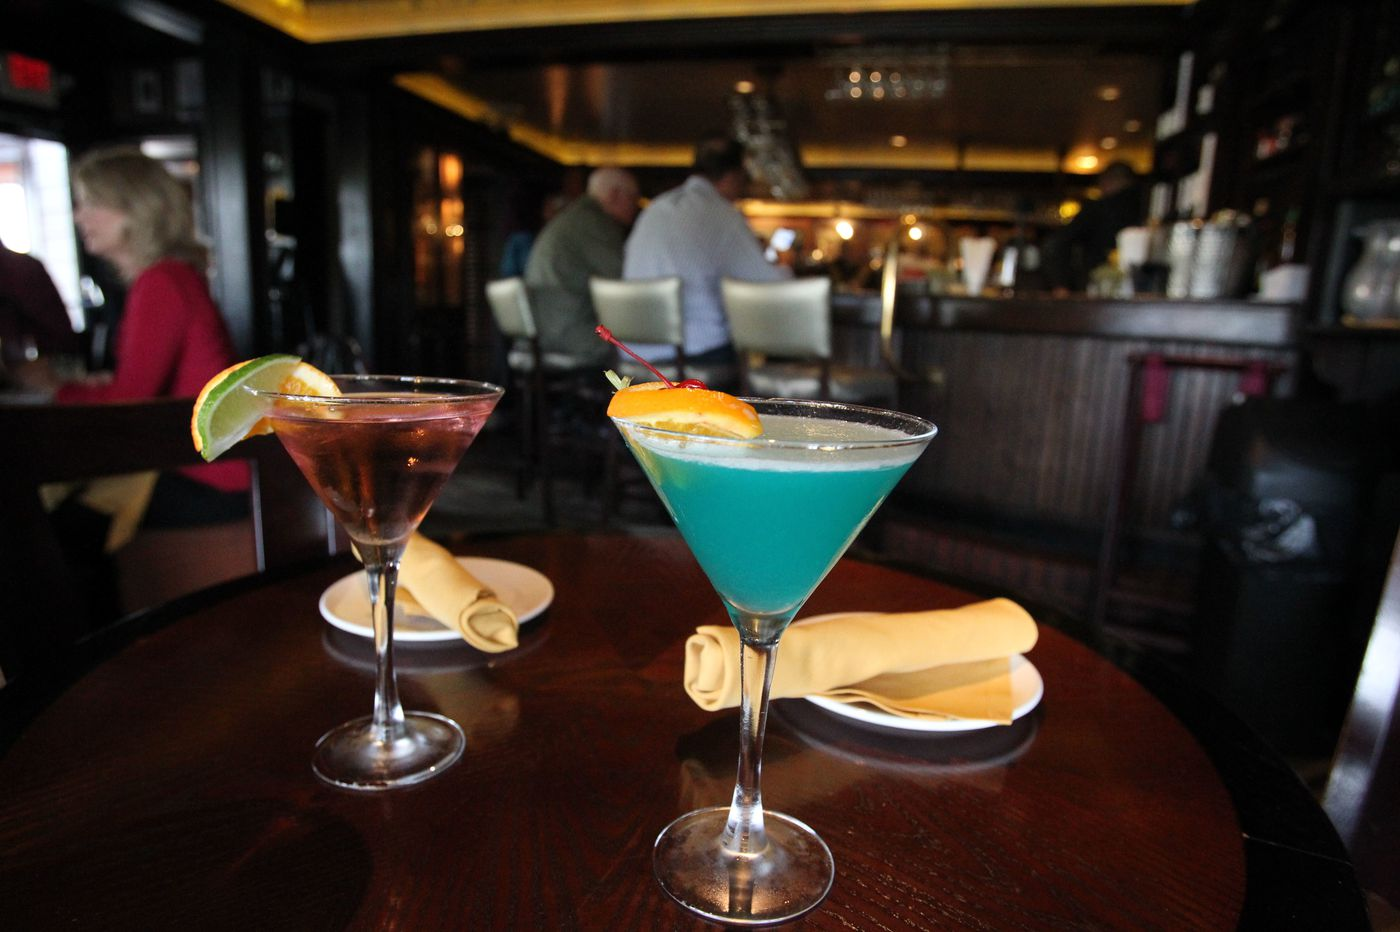 Hover aggressively: A survival guide to ladies' night at the Yardley Inn